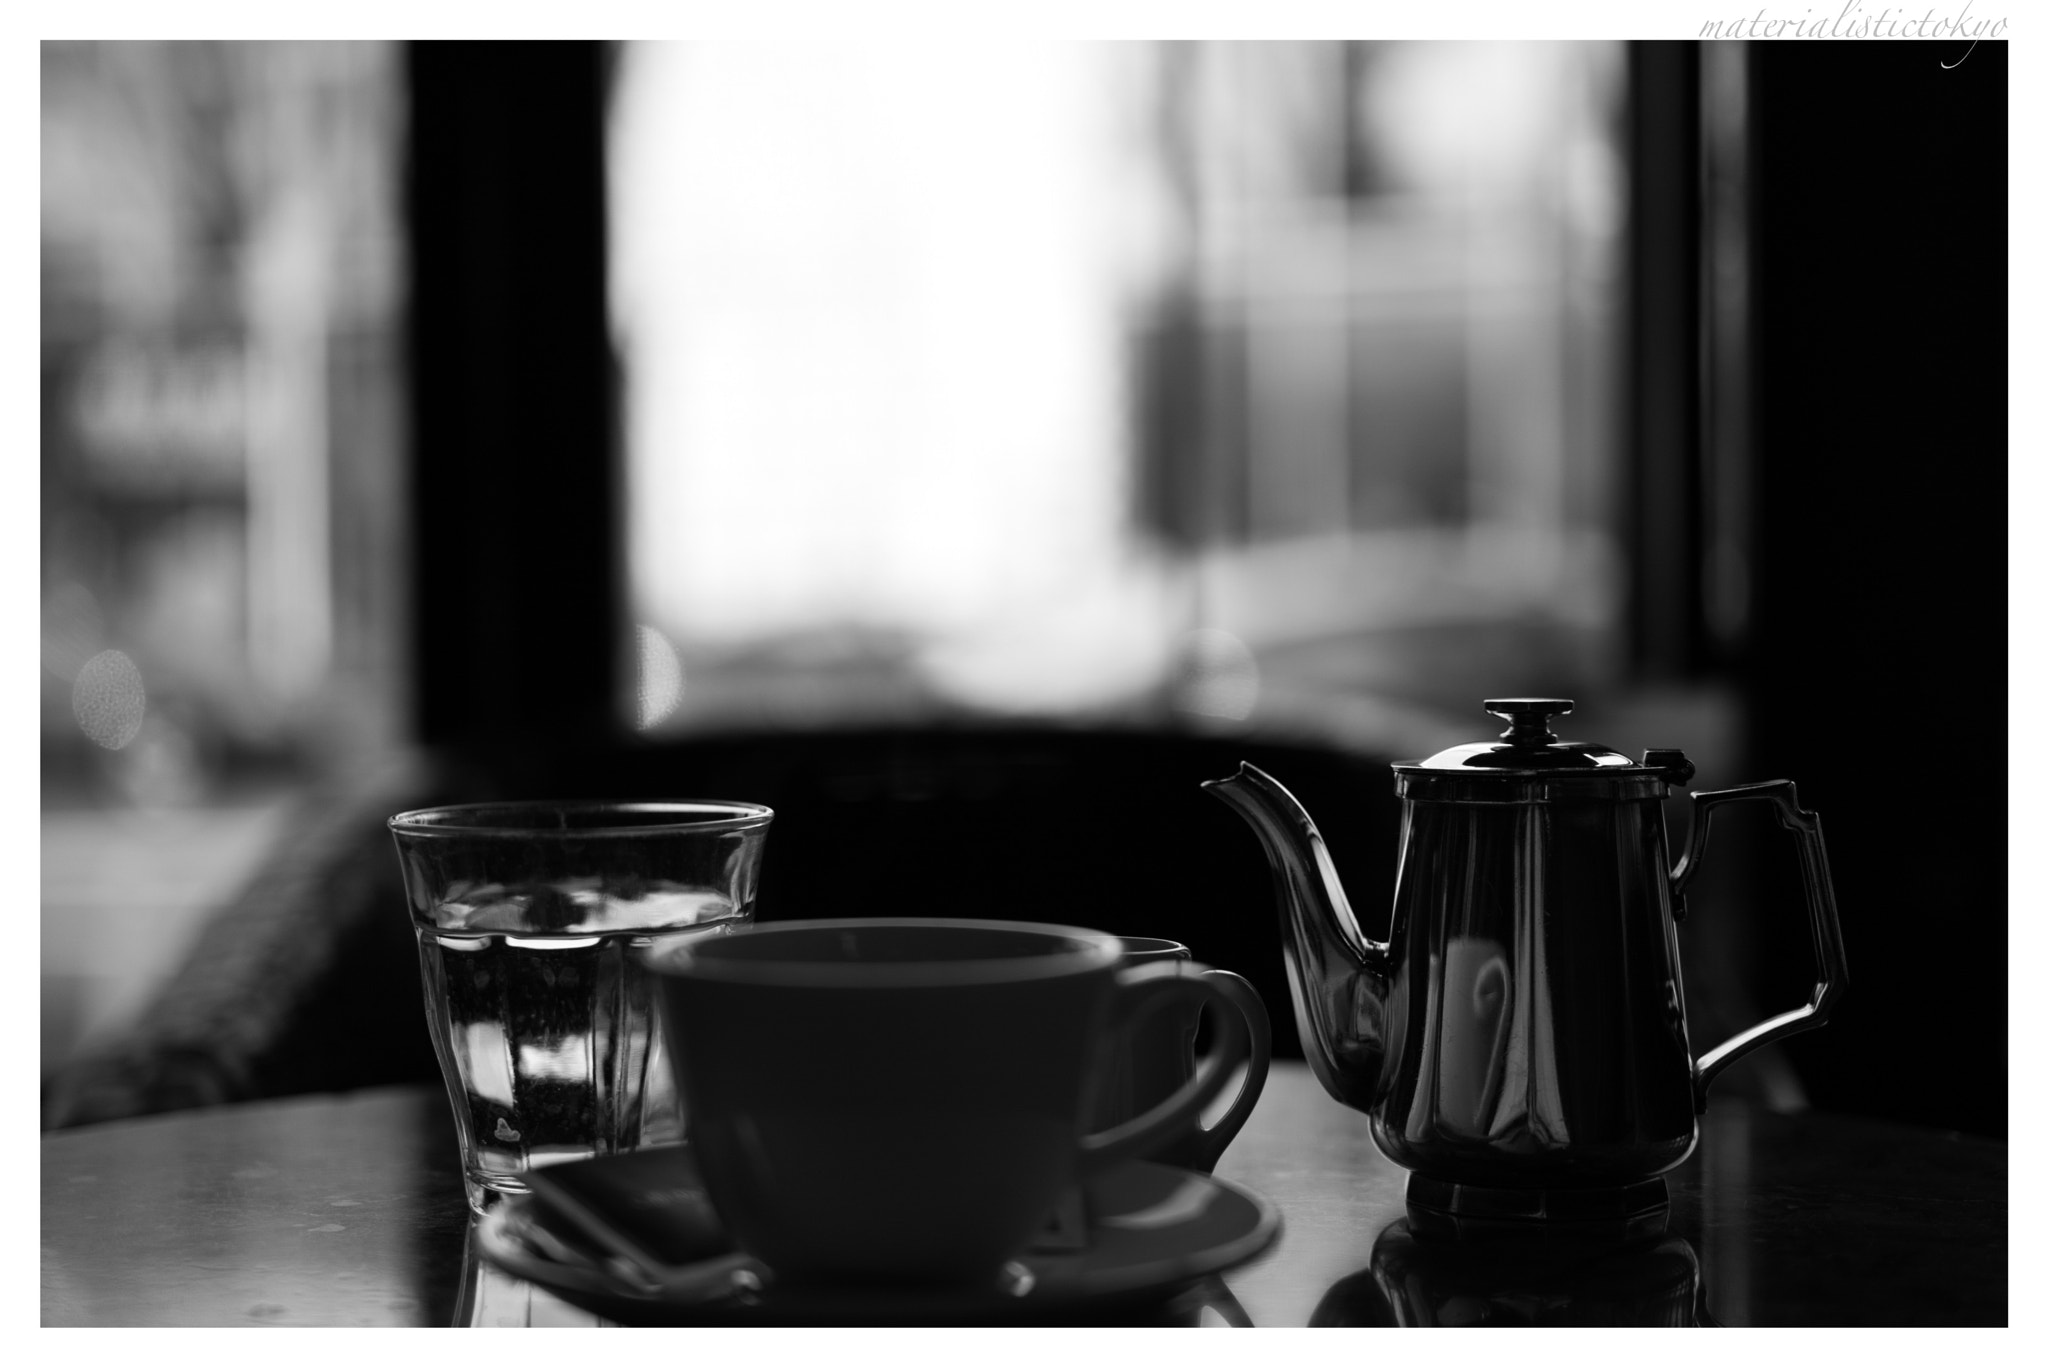 Photograph cafe by Y ISHII* on 500px